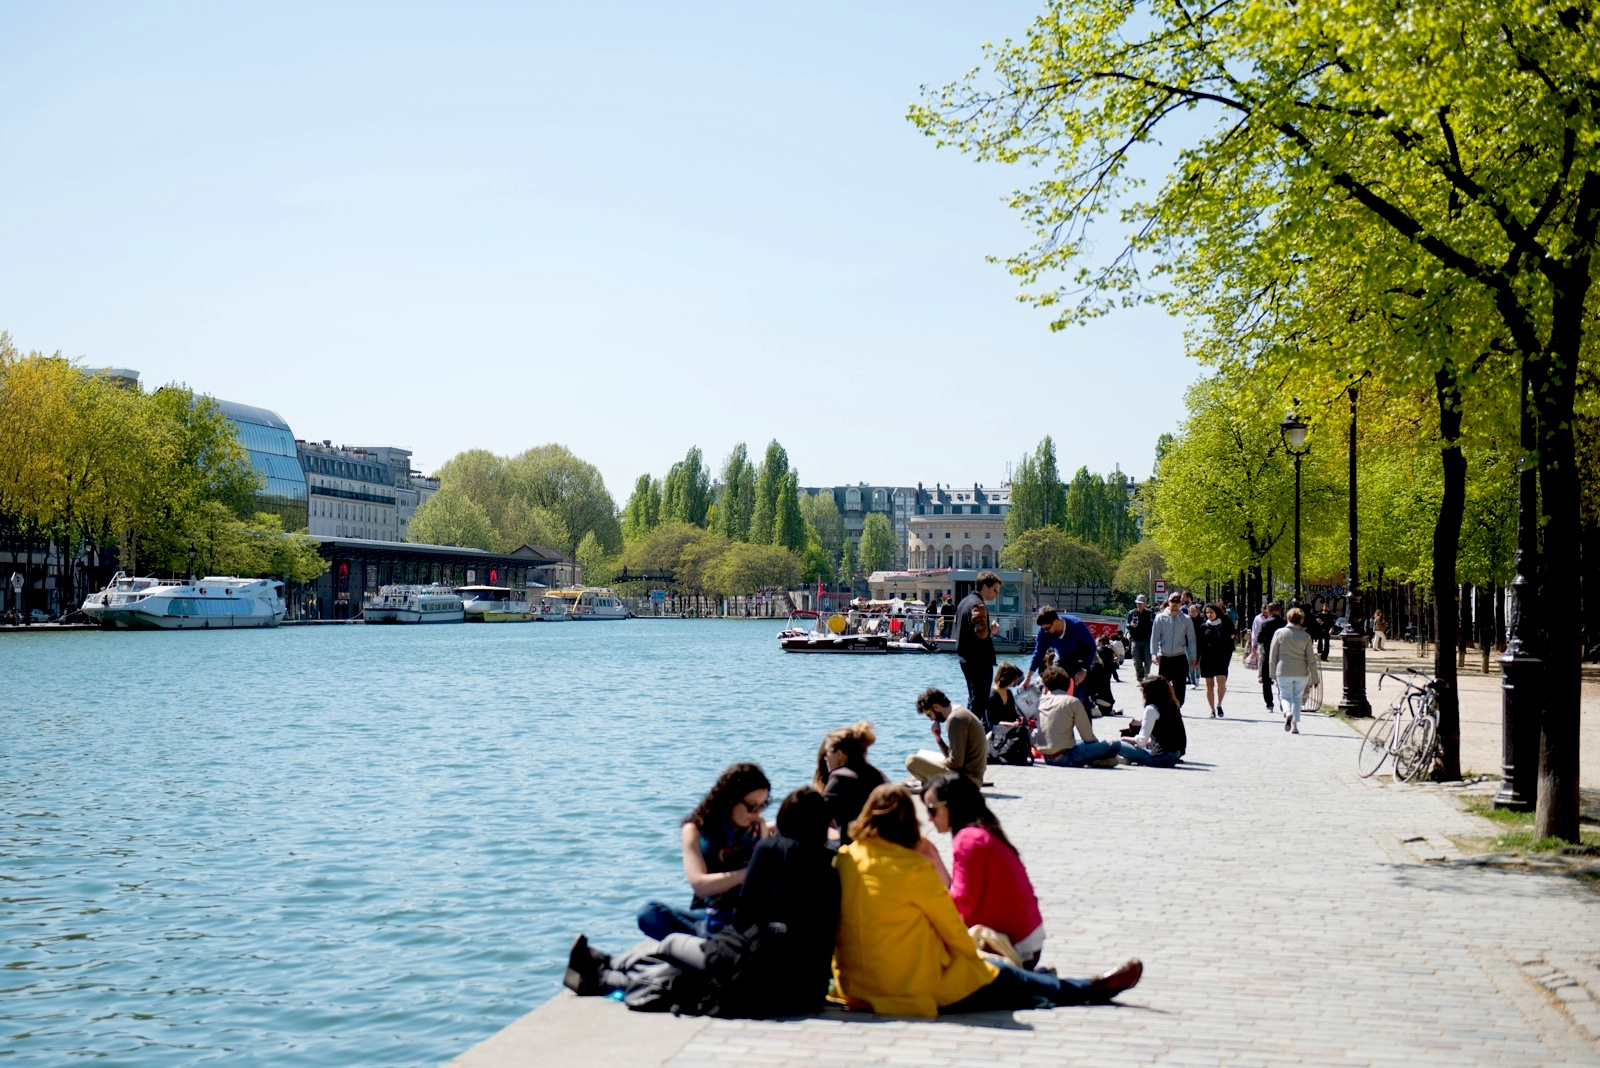 A weekend along Paris' Canal Saint-Martin, an upcoming neighborhood with markets, boutiques, cafes, and more